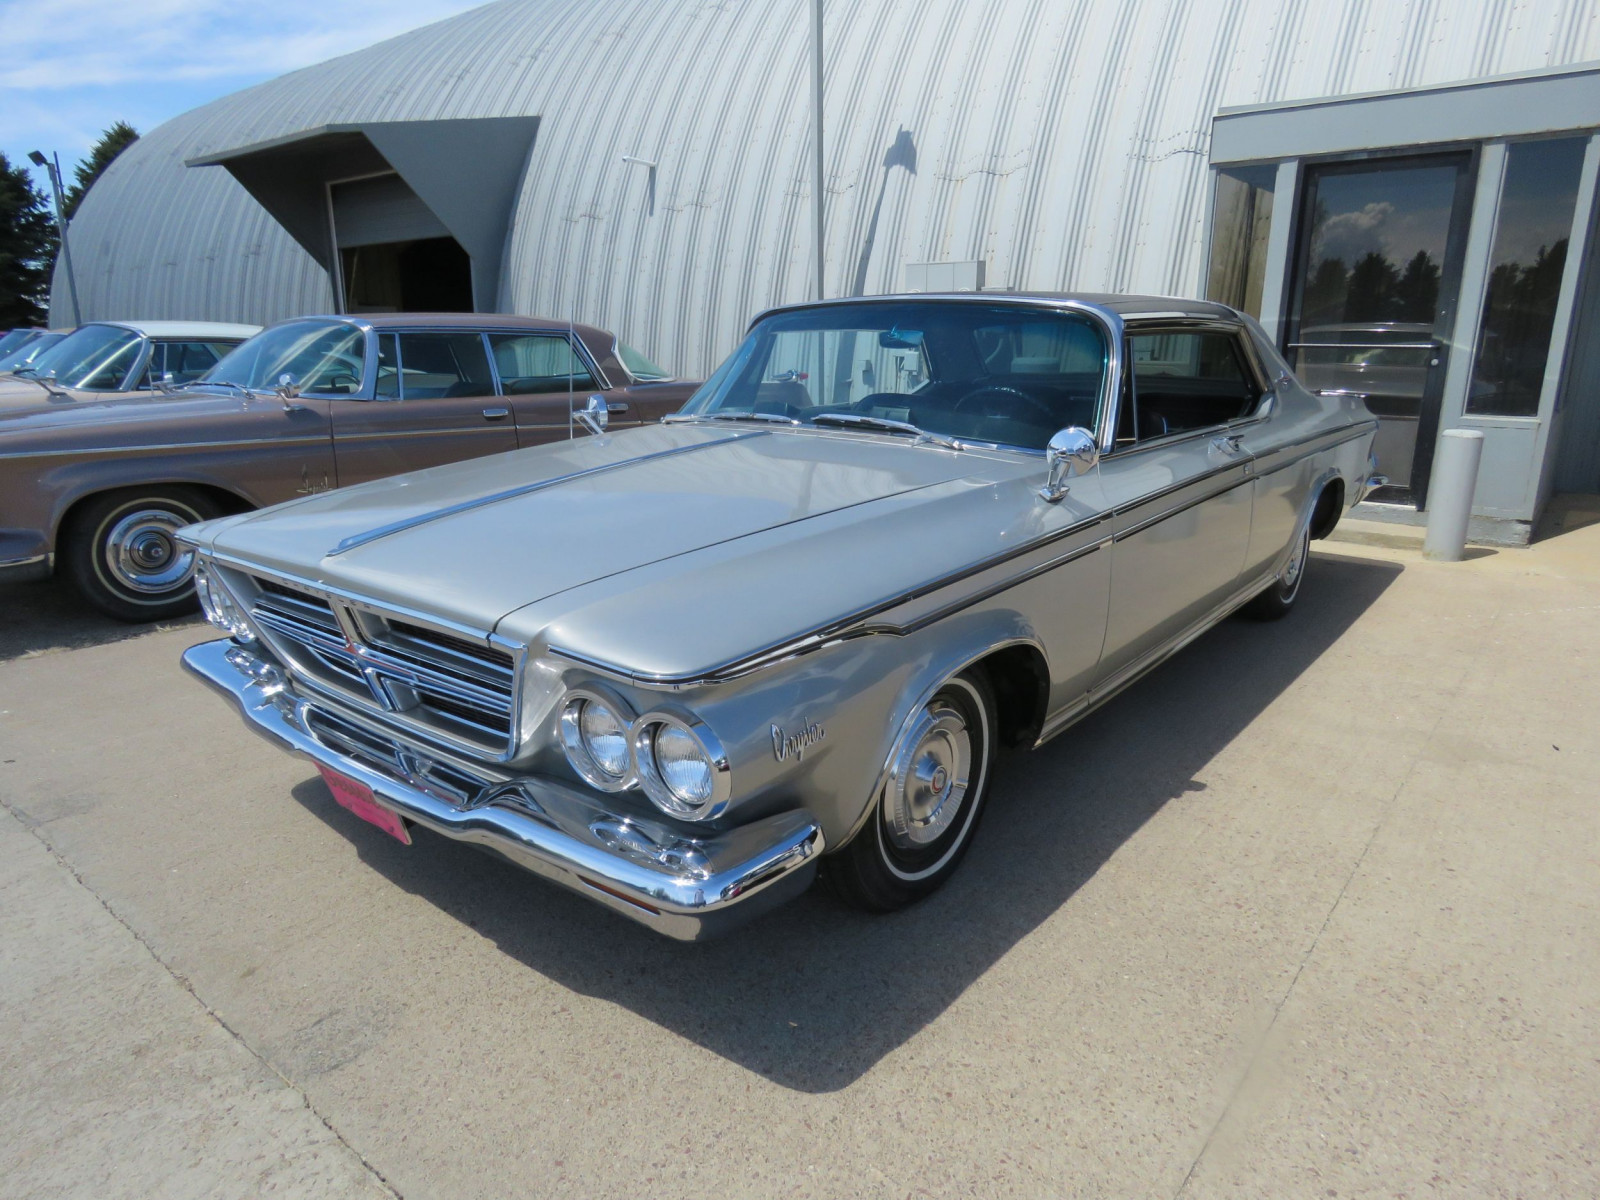 1964 Chrysler 300 Silver Edition 2dr HT - Image 1